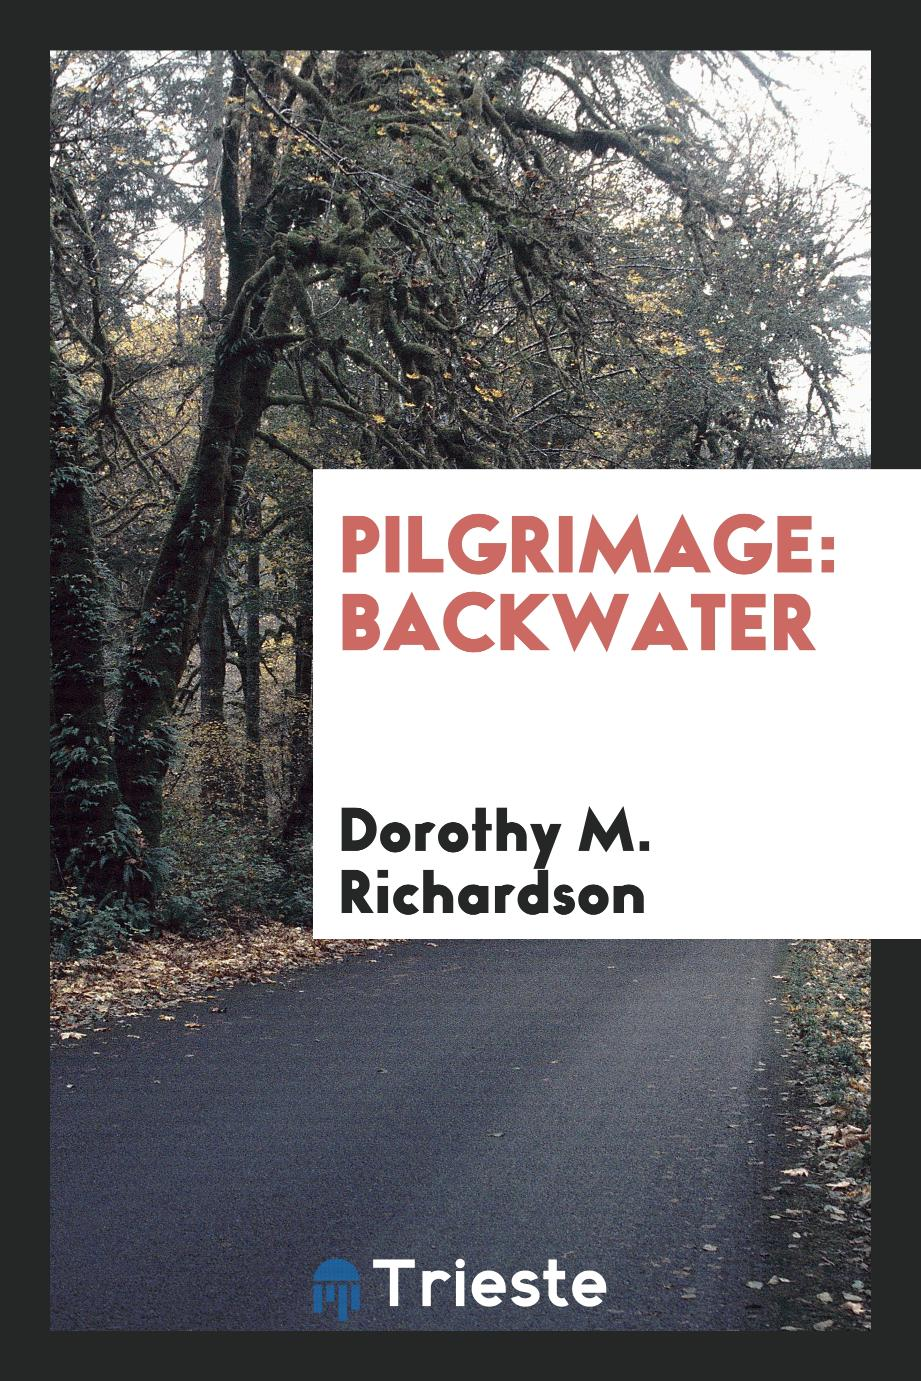 Pilgrimage: Backwater